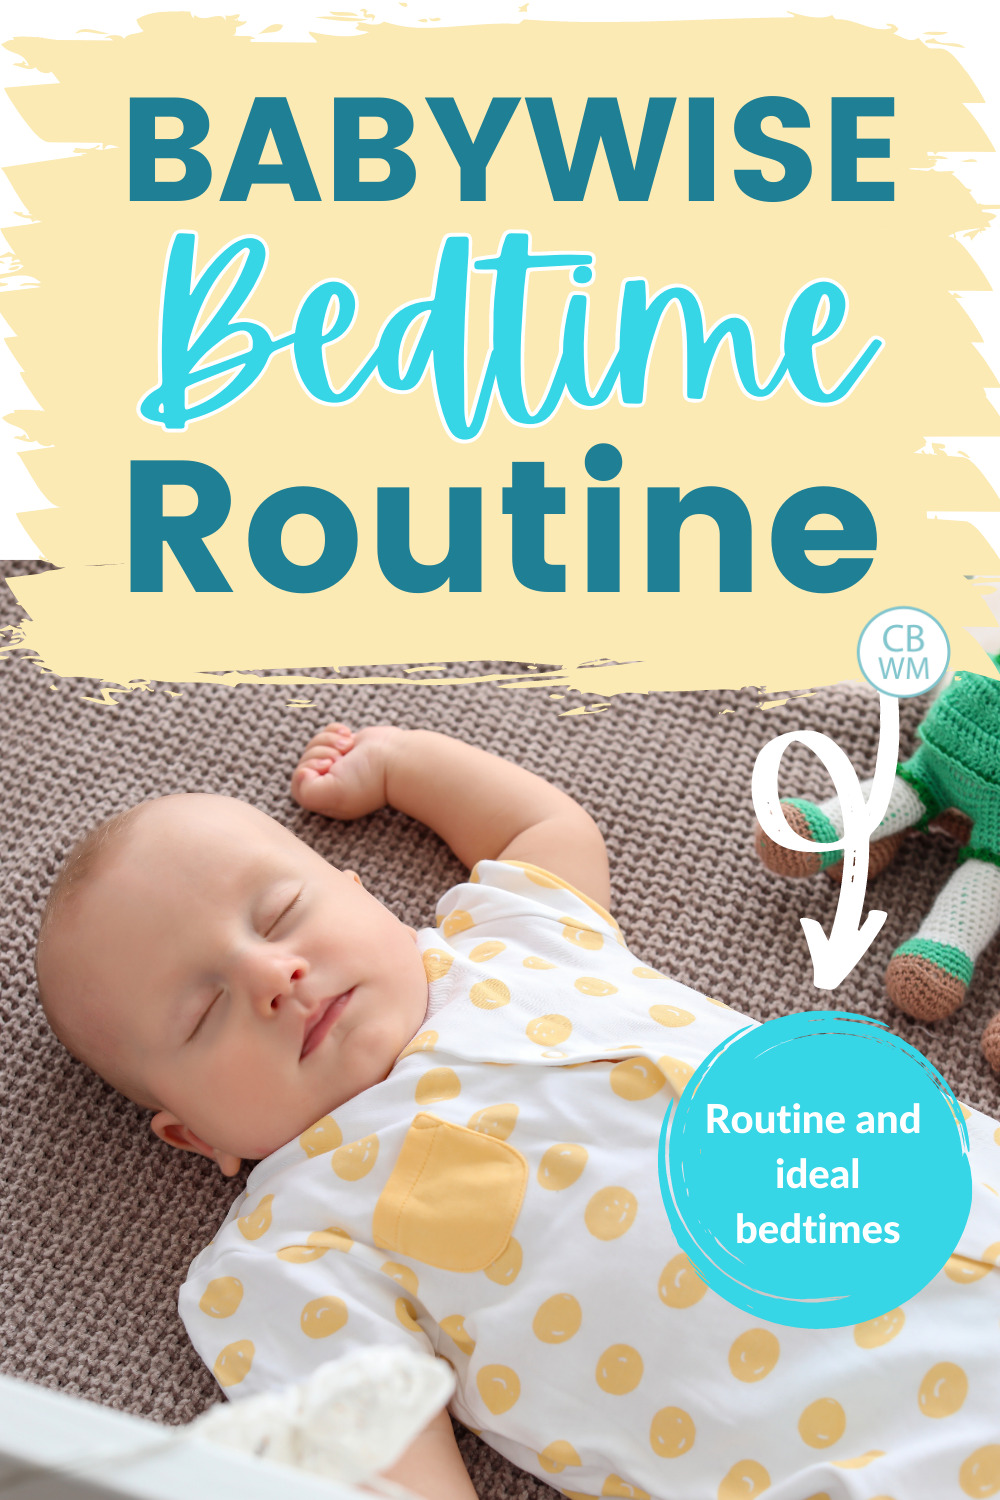 Babywise bedtime routine